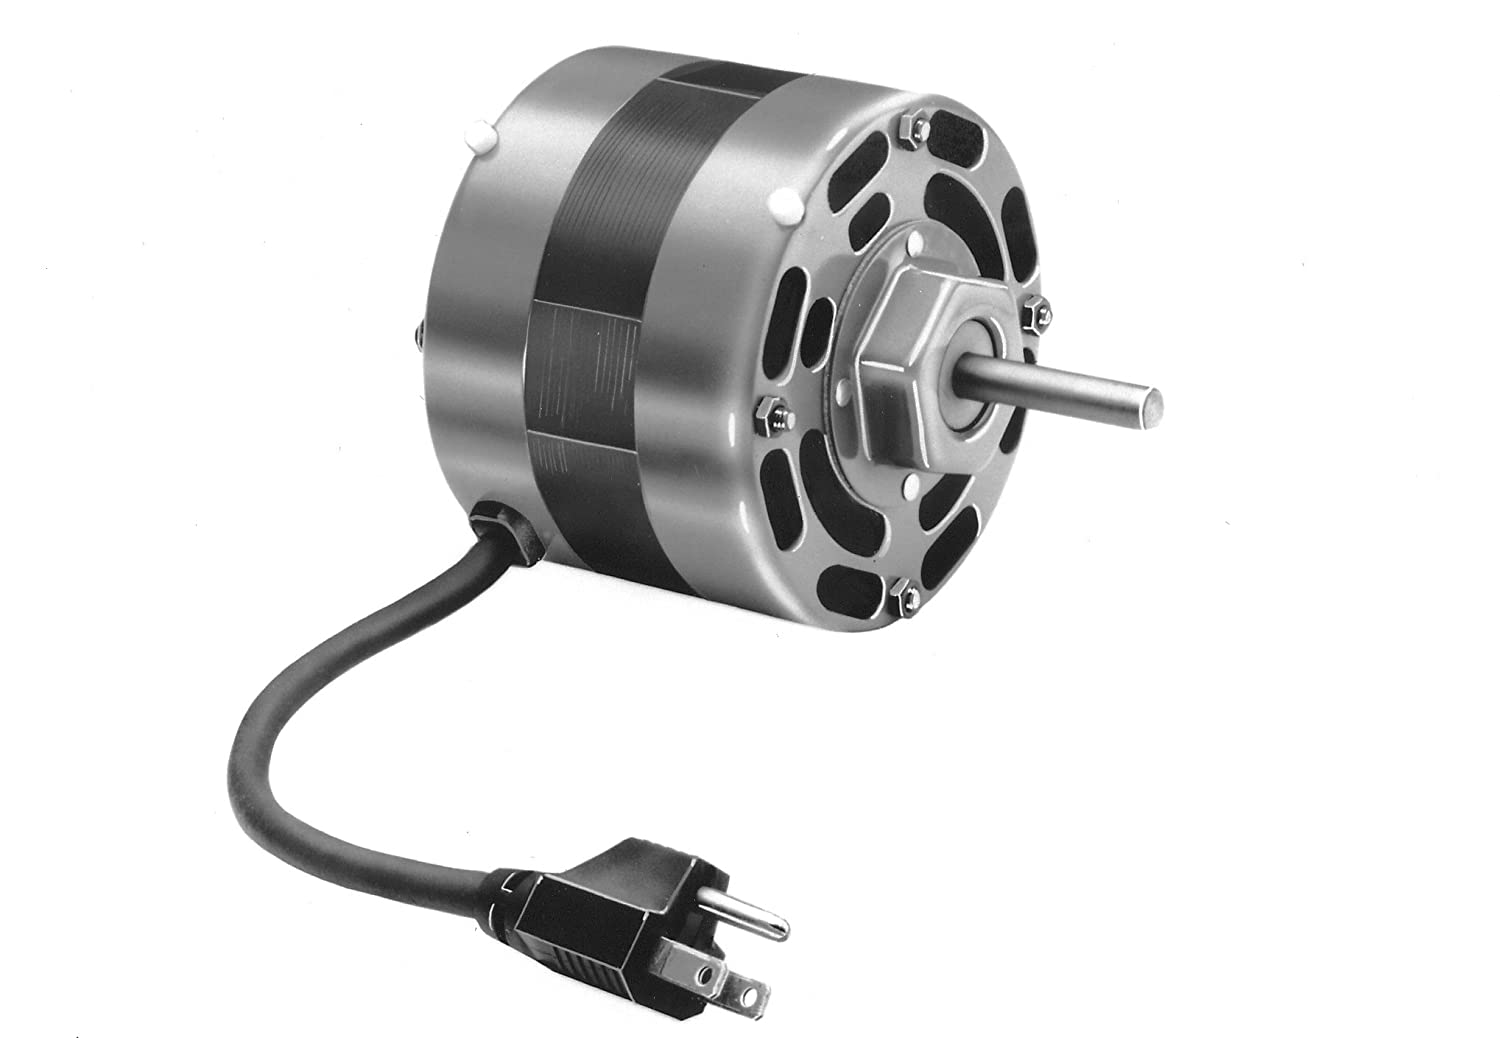 Fasco D1246 4.4-Inch Frame Open Ventilated Shaded Pole OEM Replacement Motor with  Sleeve Bearing, 1/15HP, 1550RPM, 115V, 60Hz, 2.3 Amps